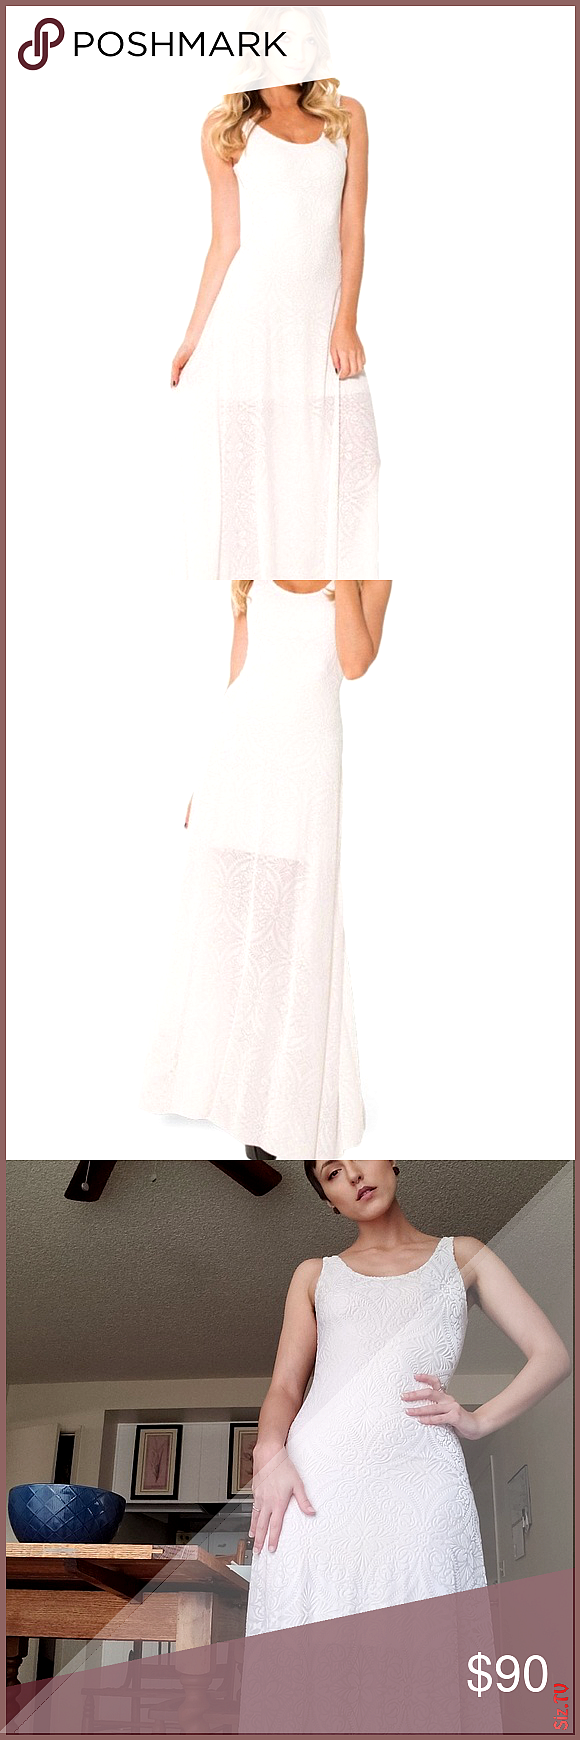 Blackmilk burned velvet maxi dress The SOLD OUT burned velvet white maxi dress from black milk Such...